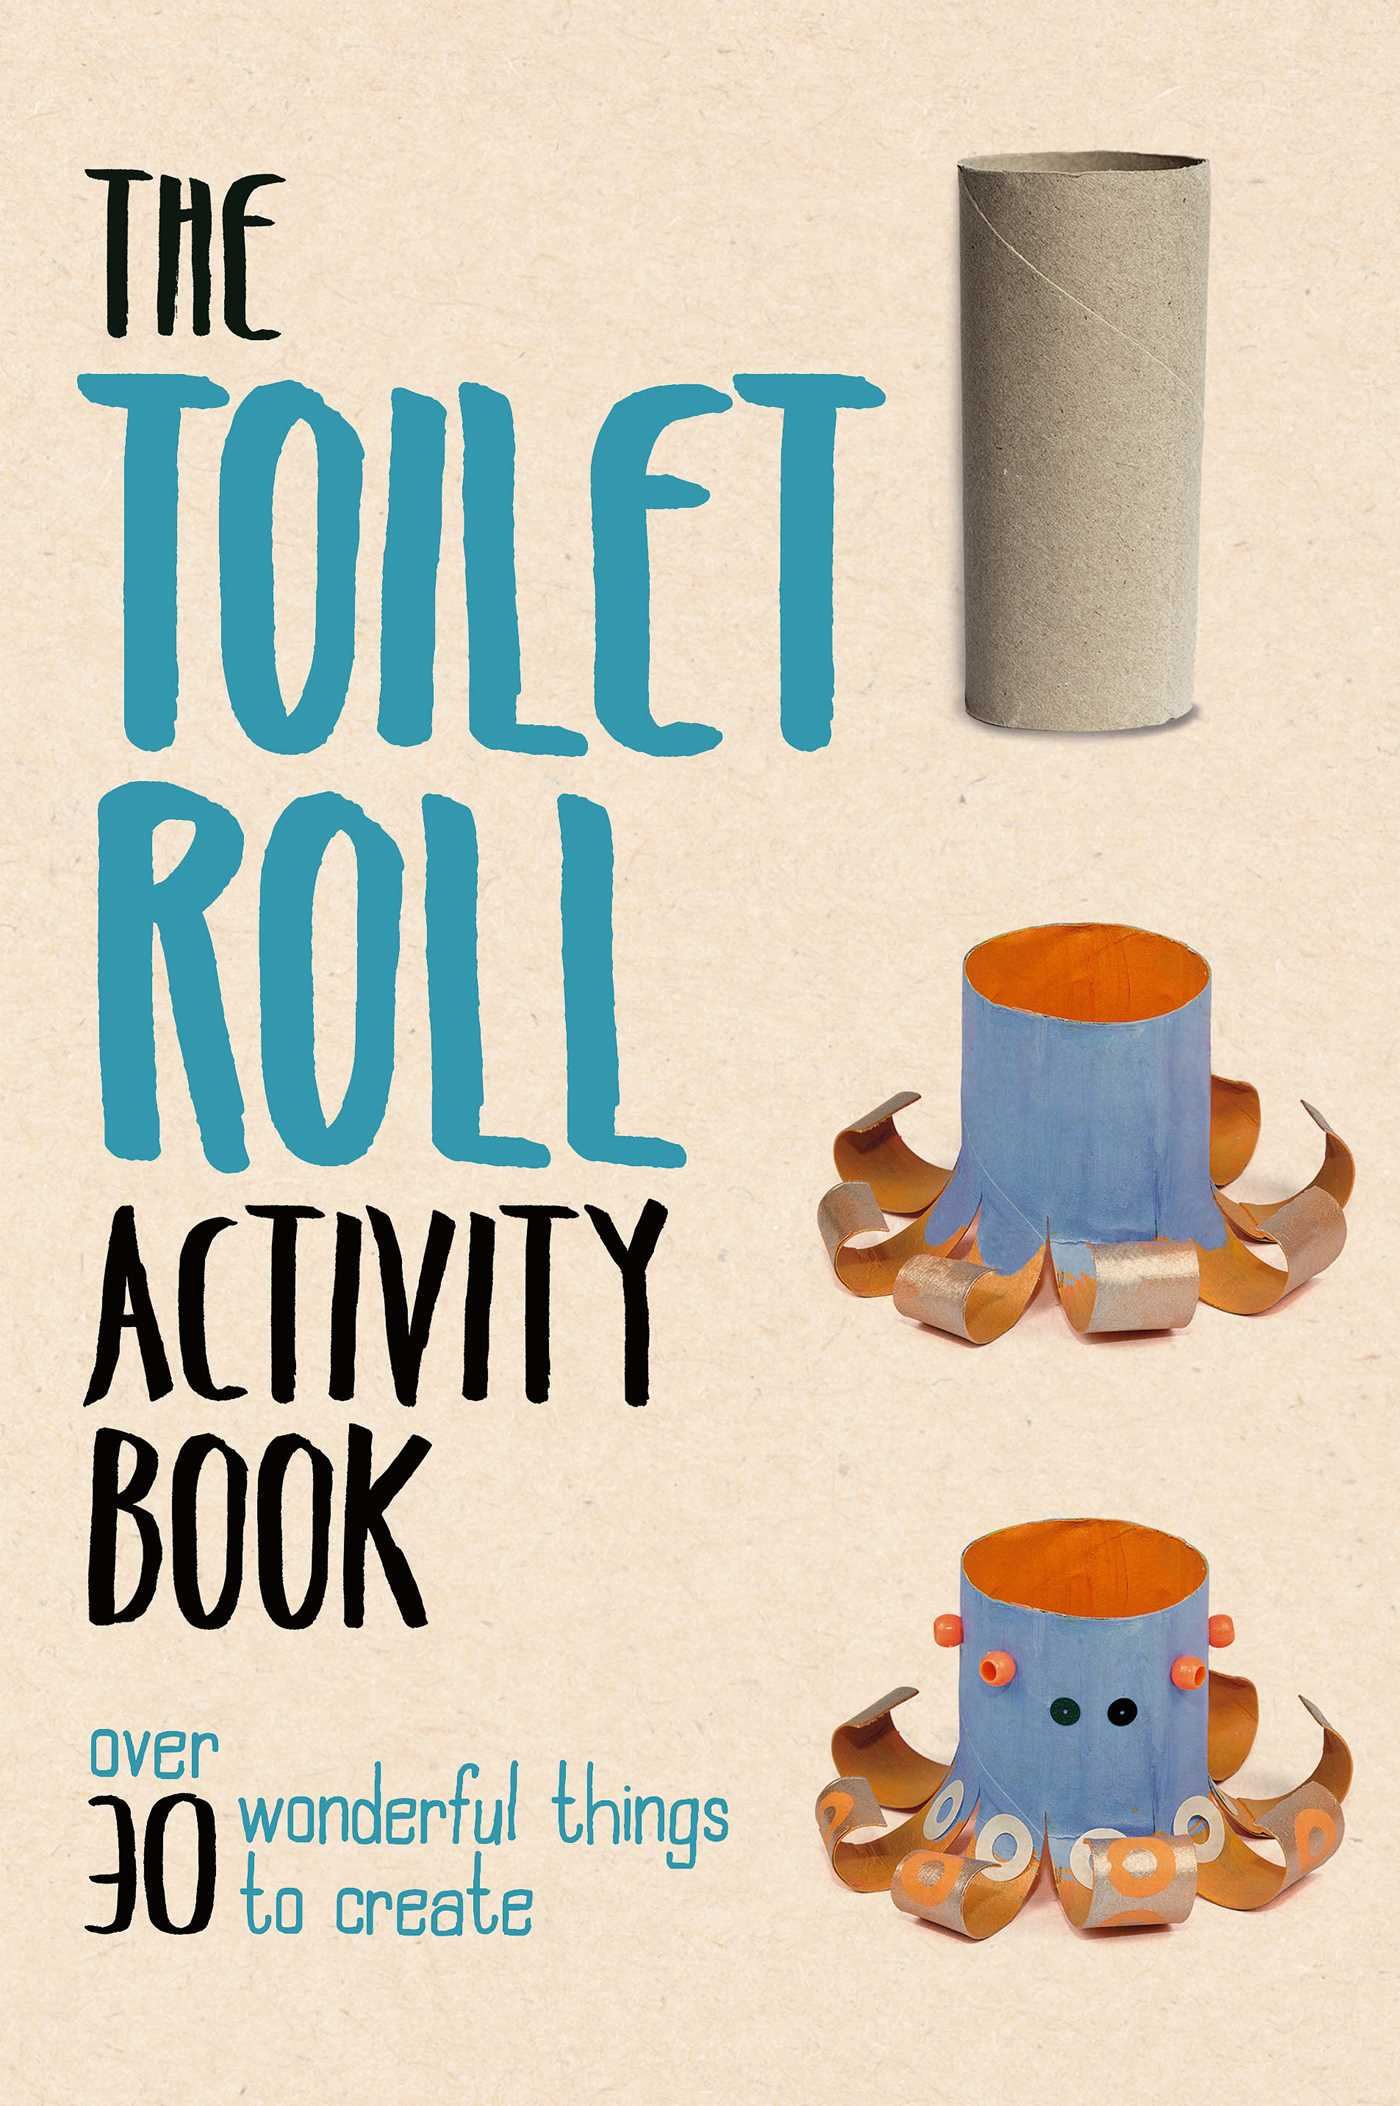 Toilet roll activity book 9781684125692 hr